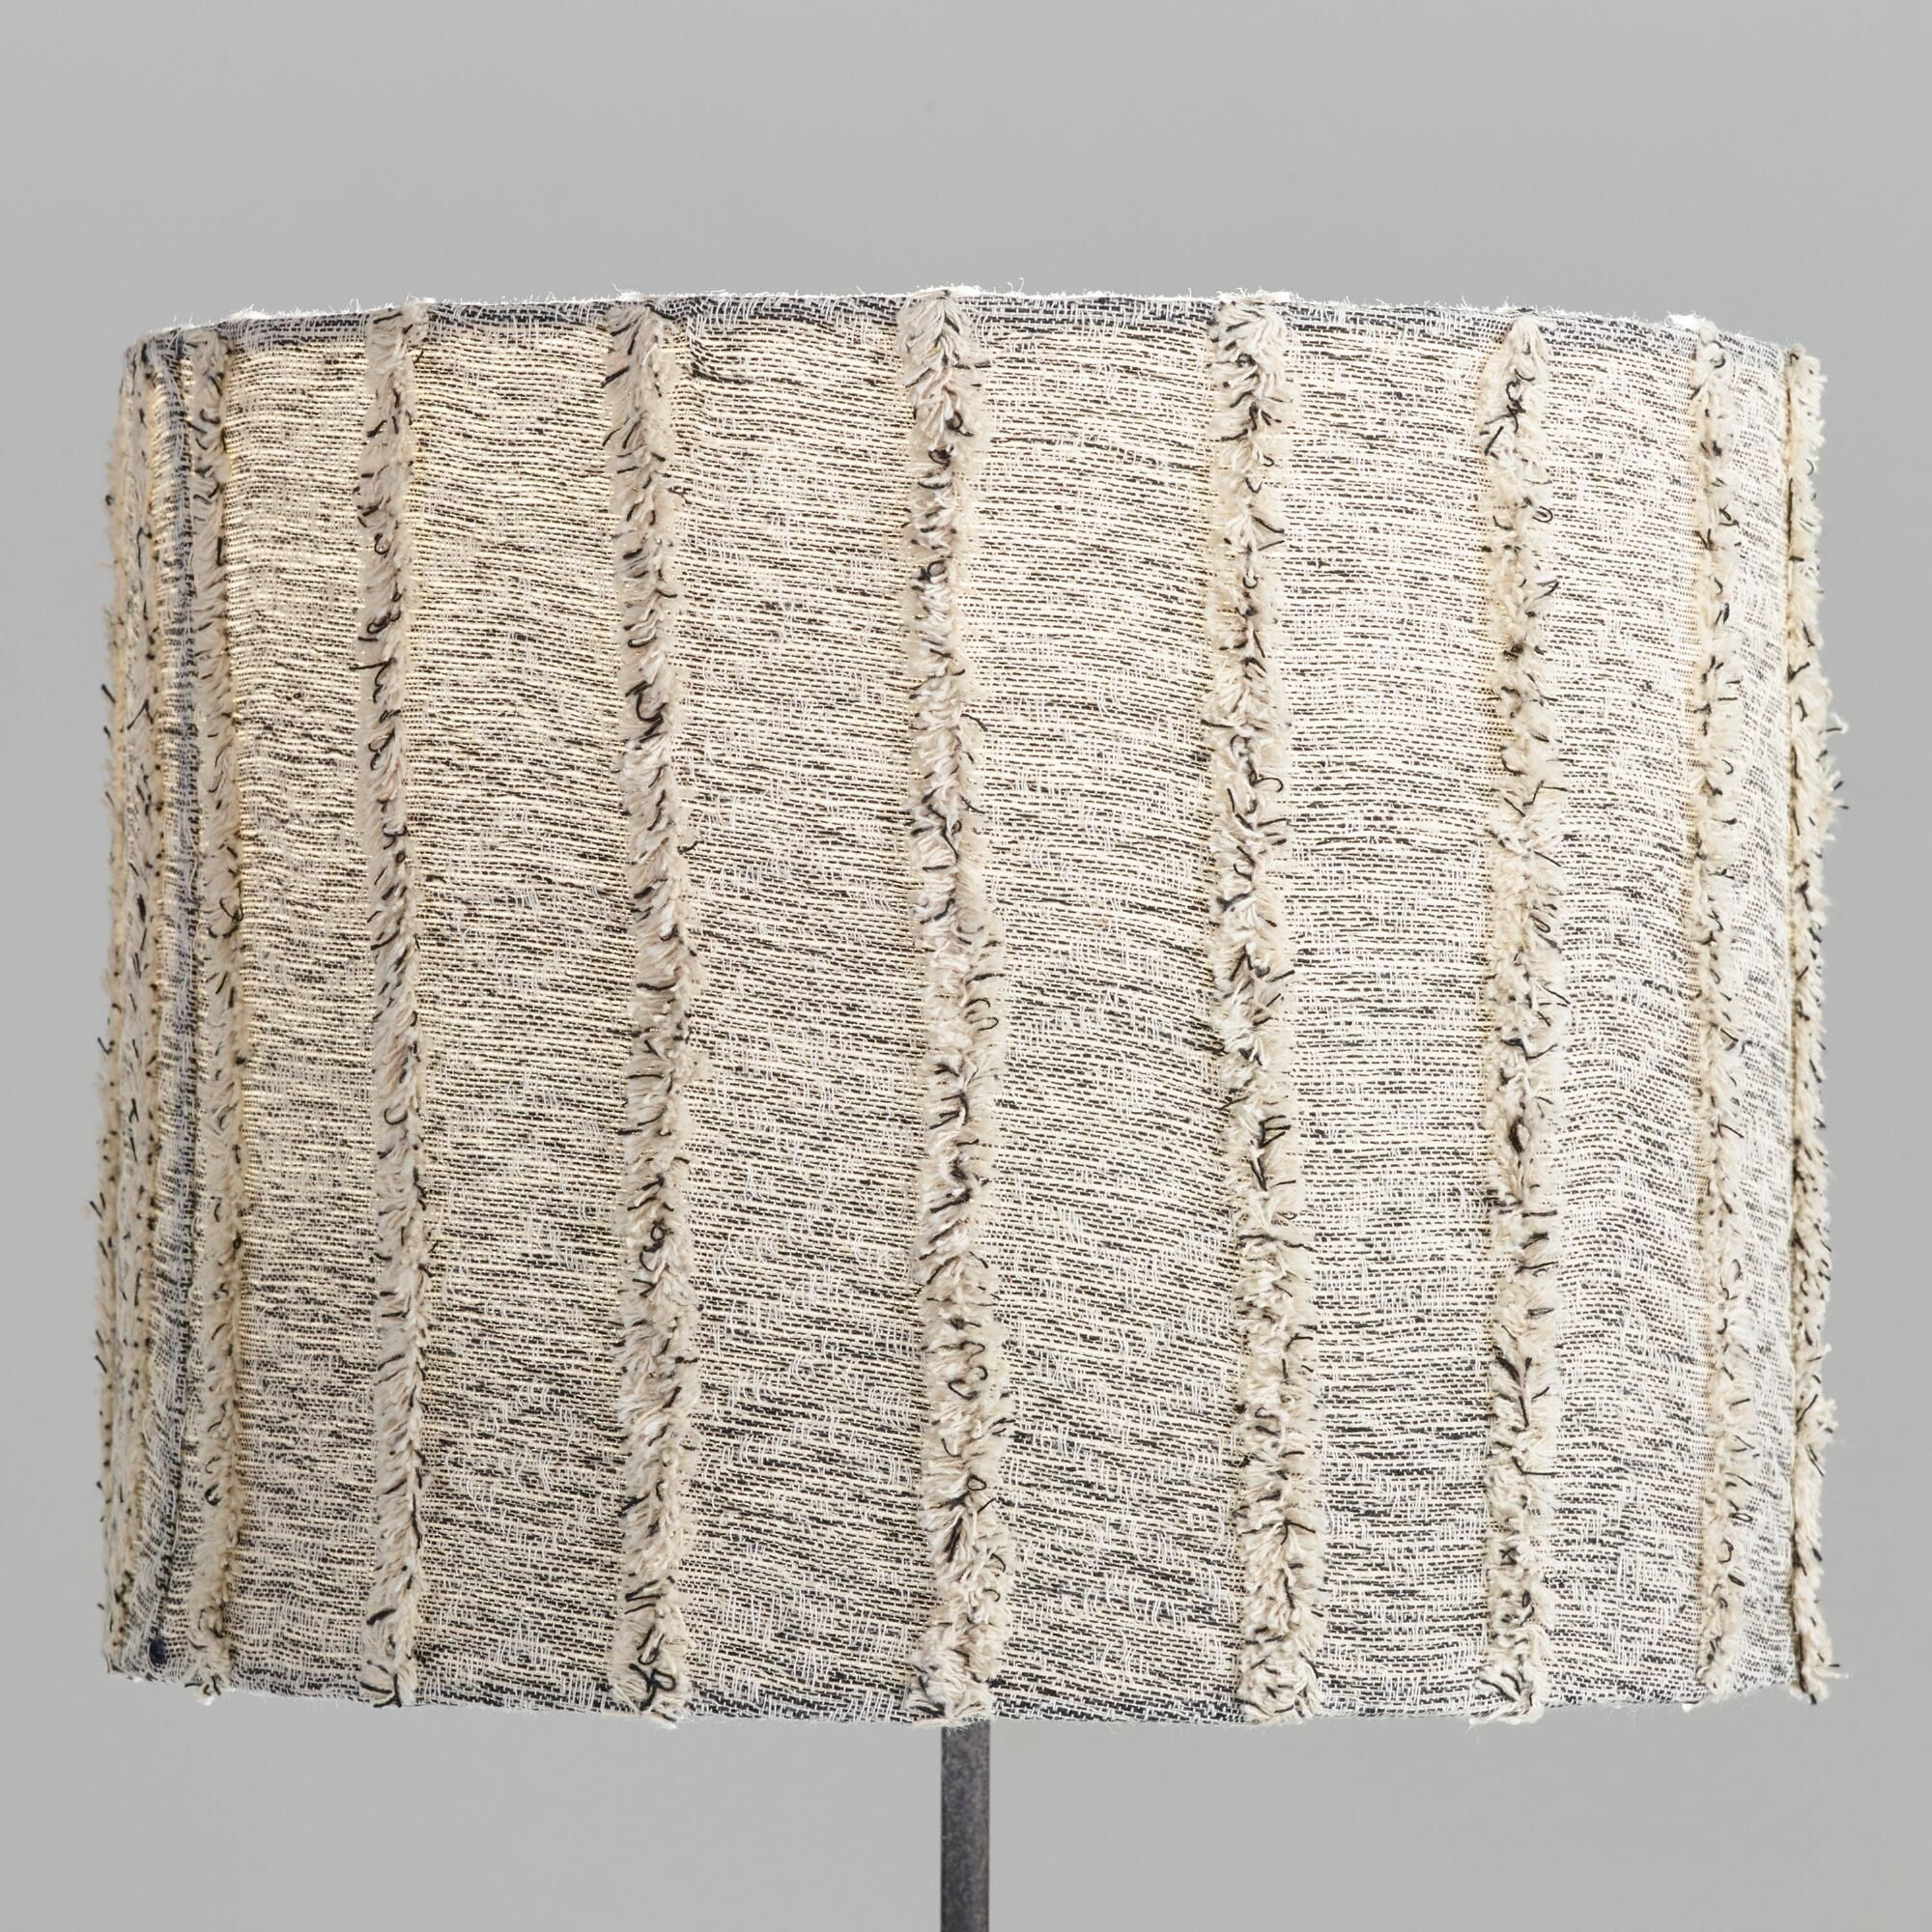 Marbled Gray Textured Drum Table Lamp Shade With Fringe By World